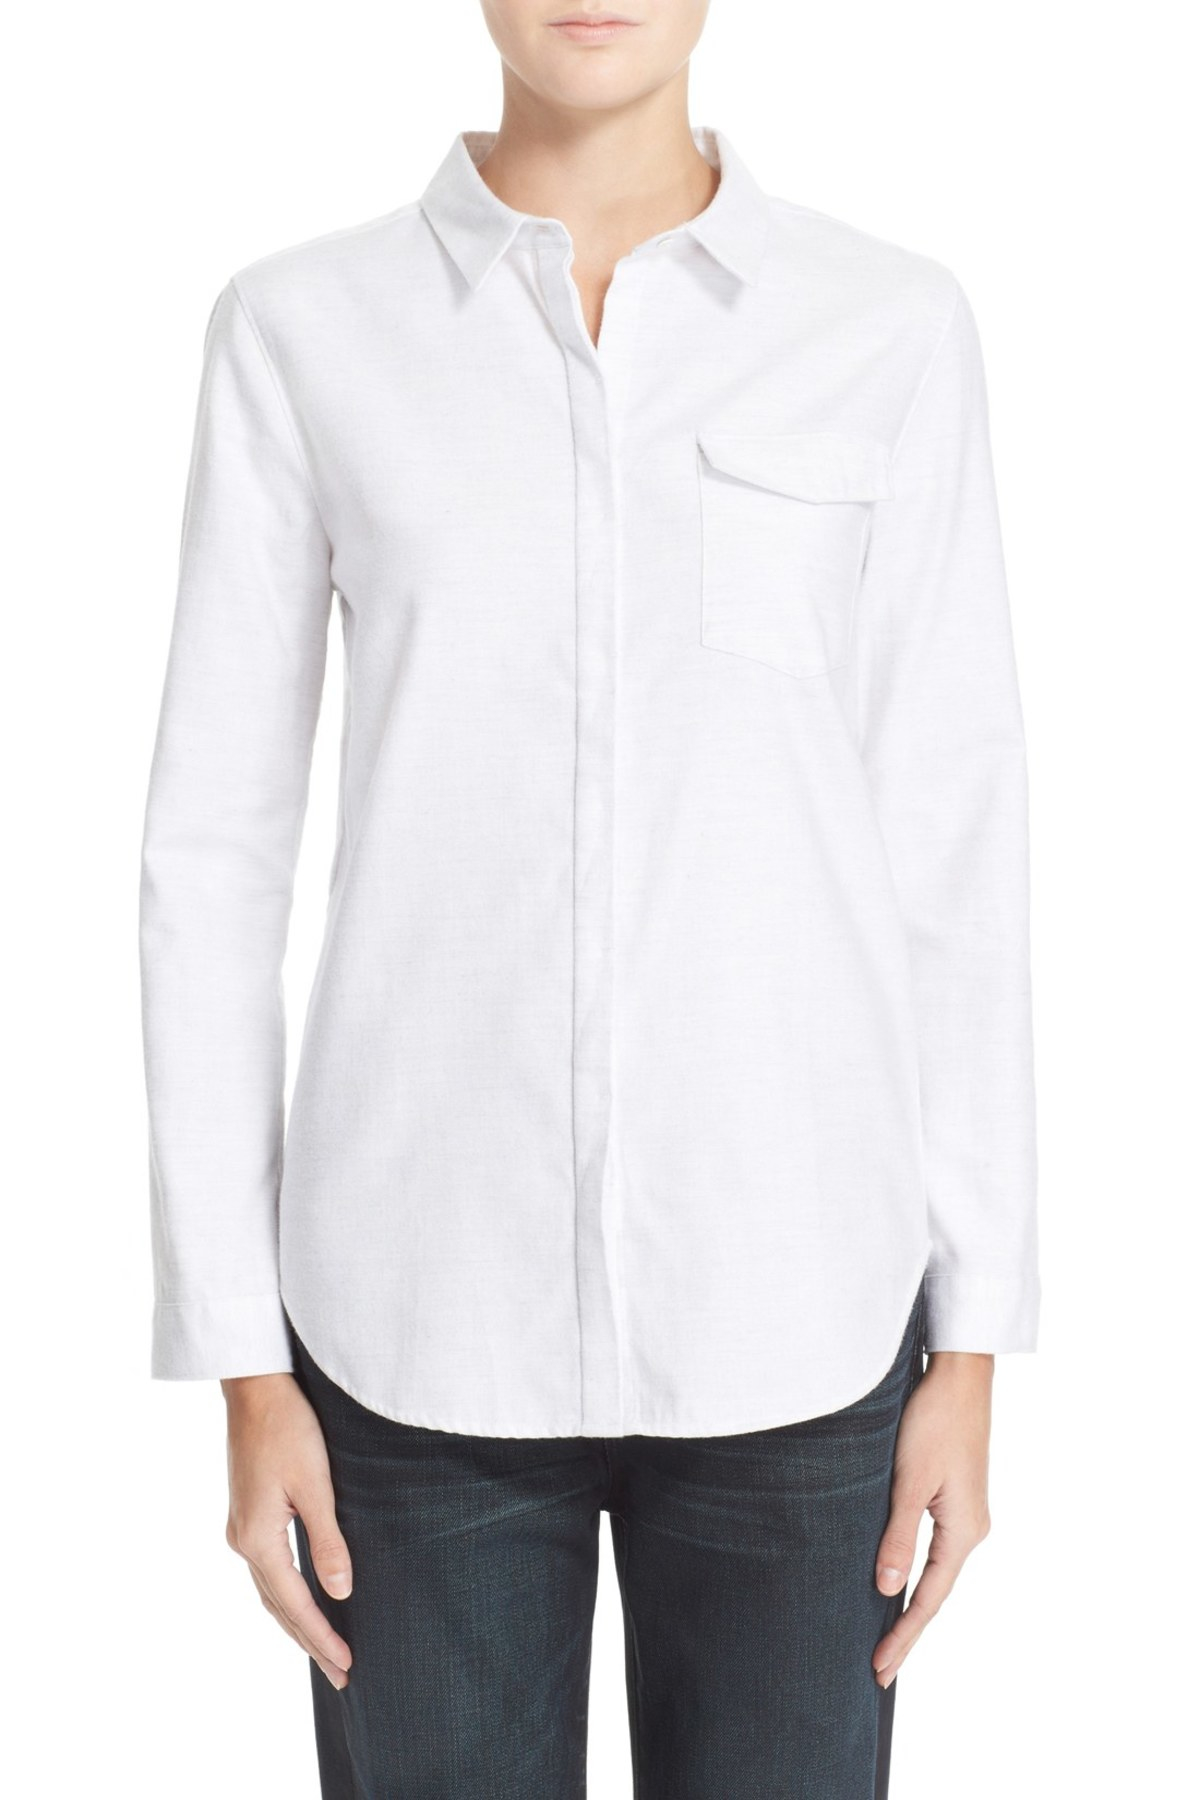 Ayr Brushed Twill Shirt In White Lyst